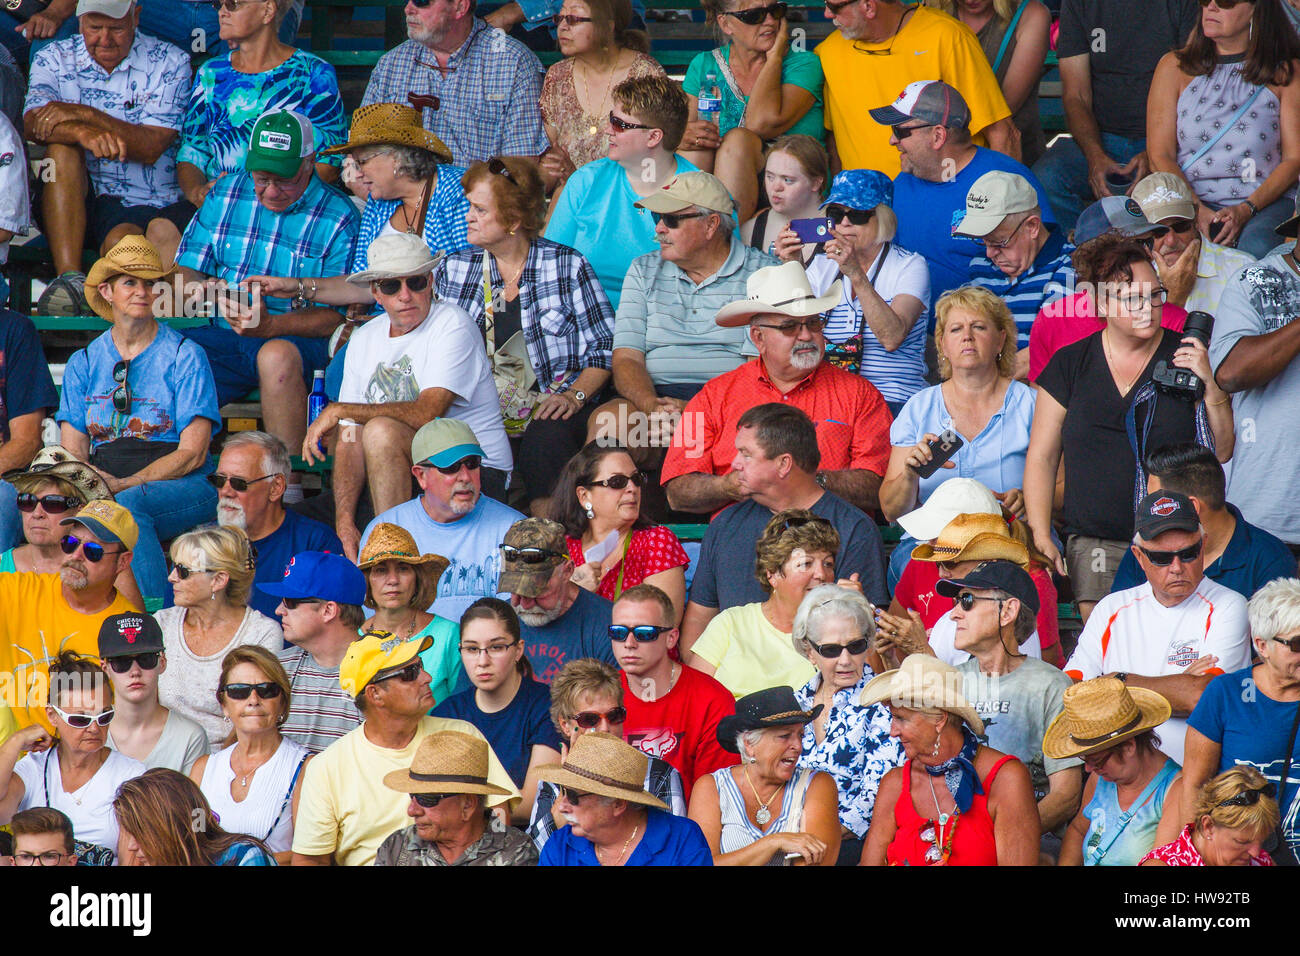 Crowd of people in bleachers at spectator sporting event - Stock Image